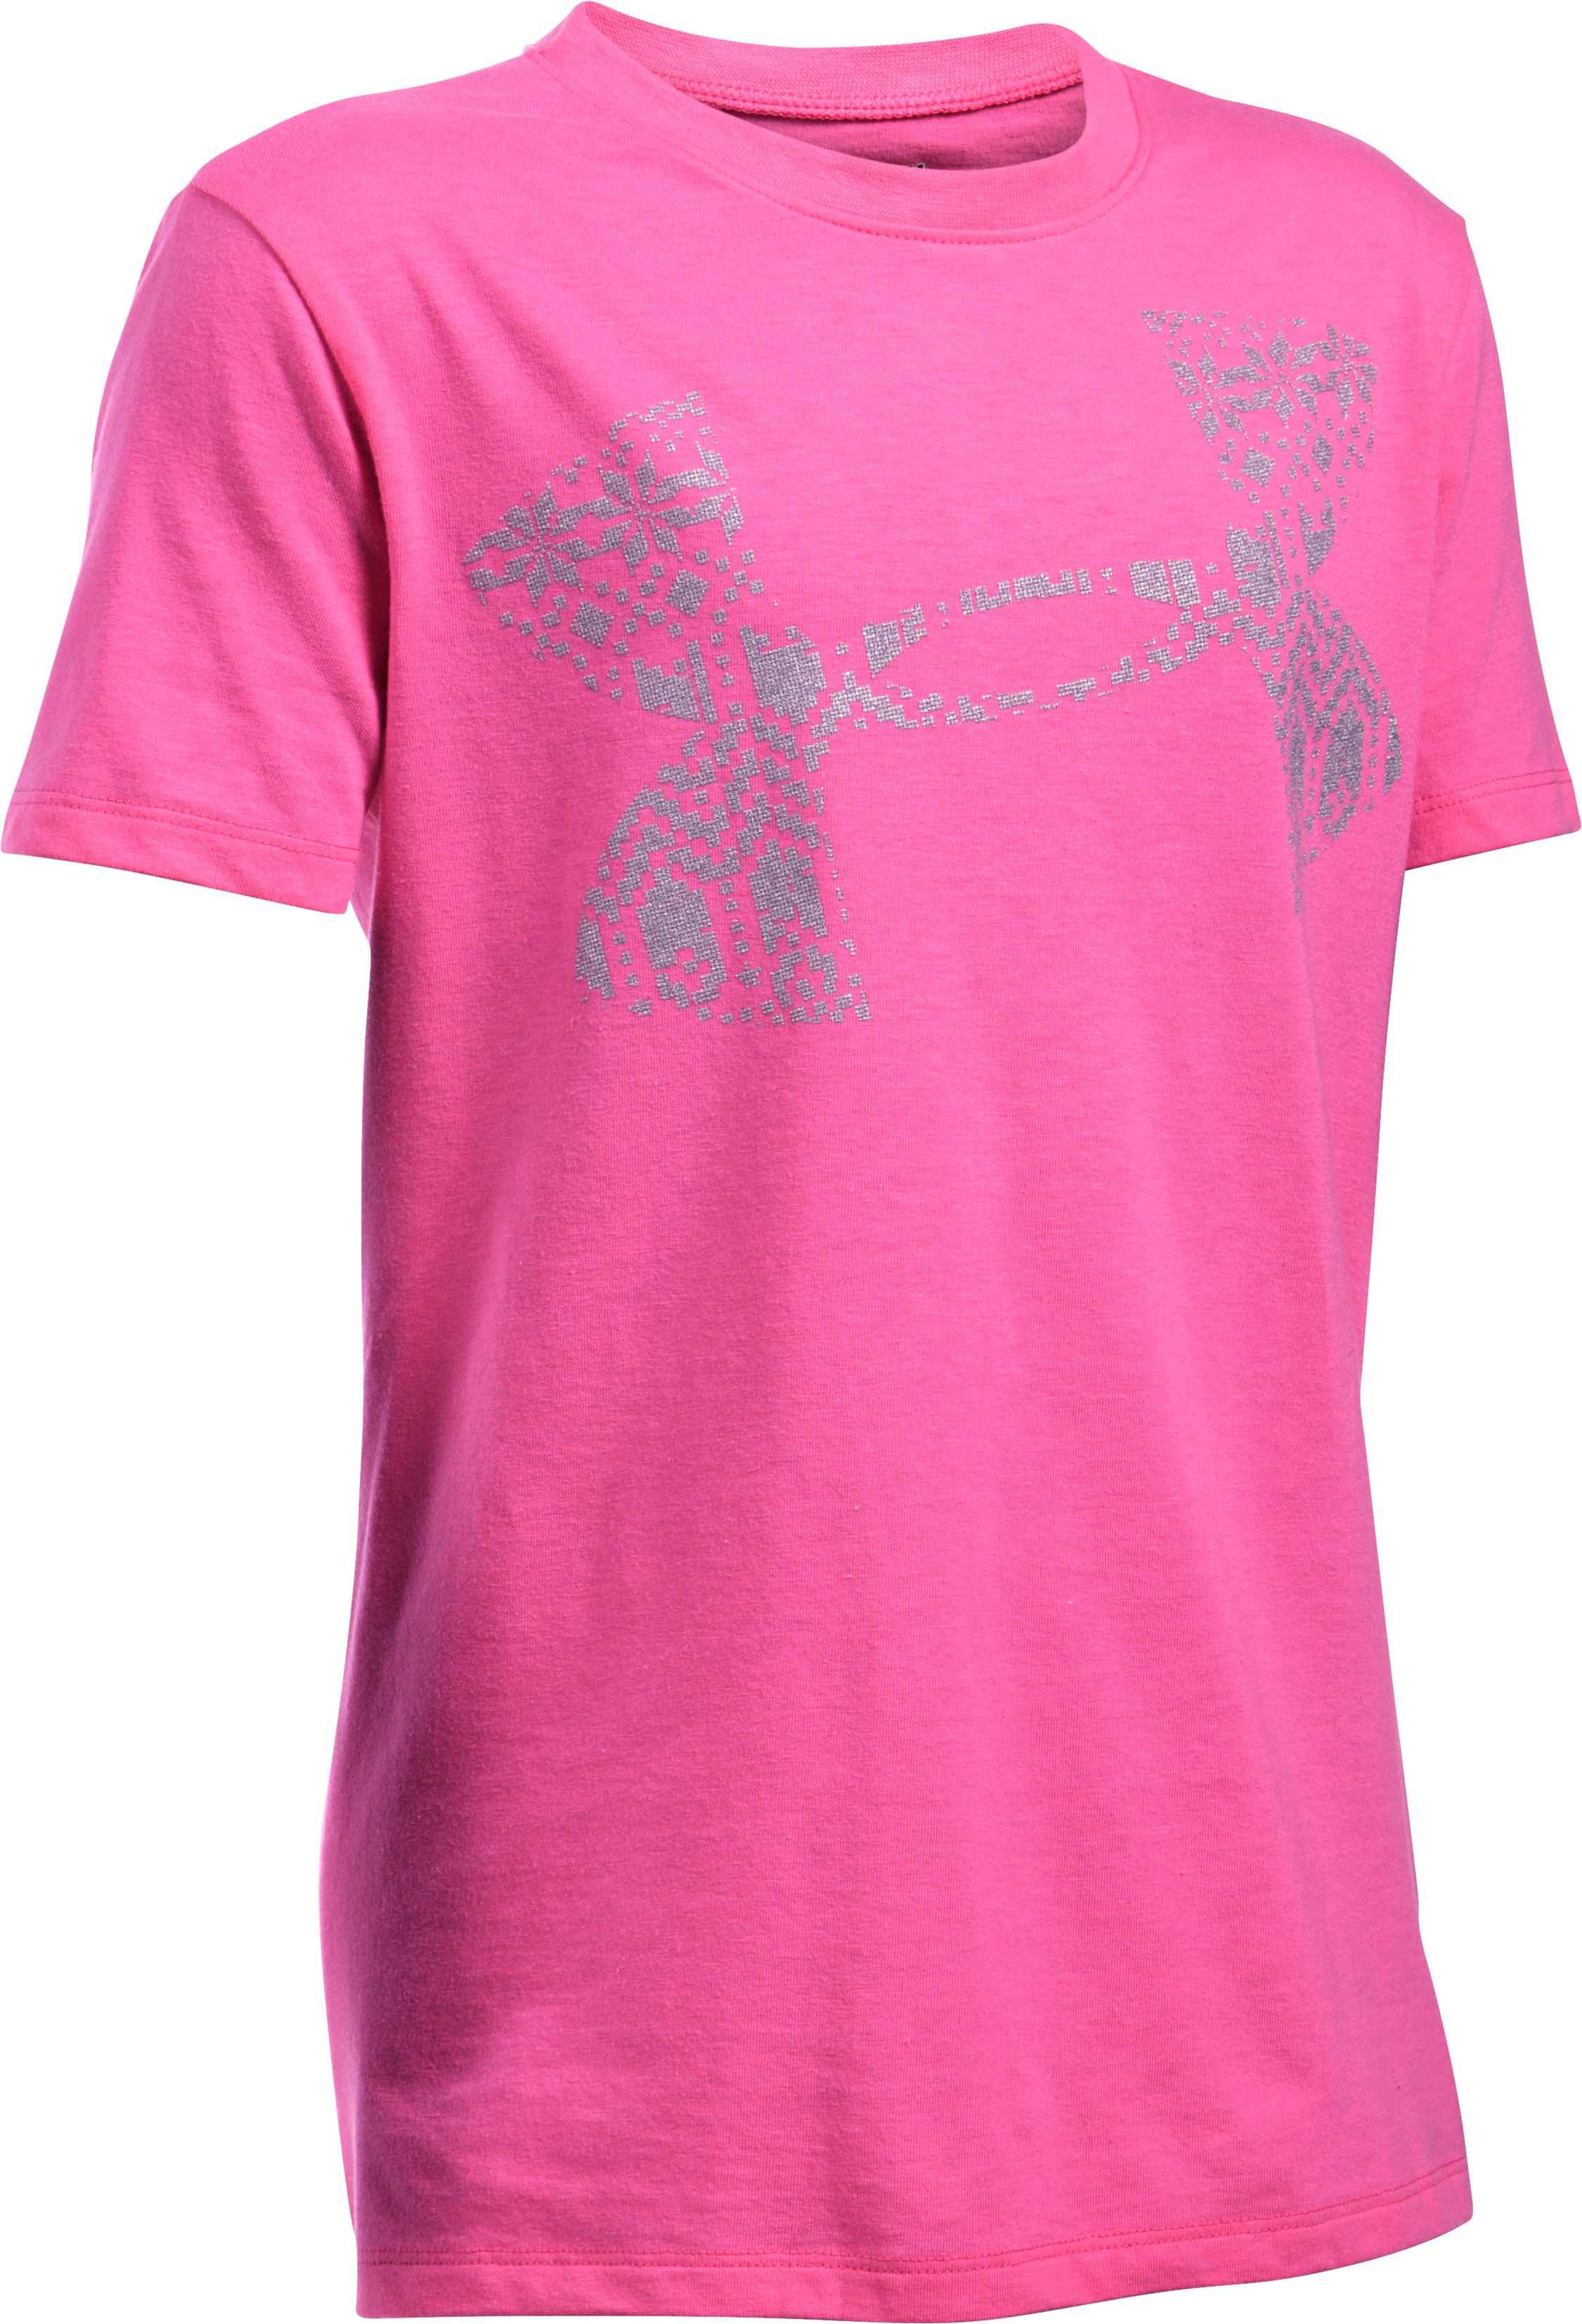 Girls' UA Holiday Logo T-Shirt, CHAOS